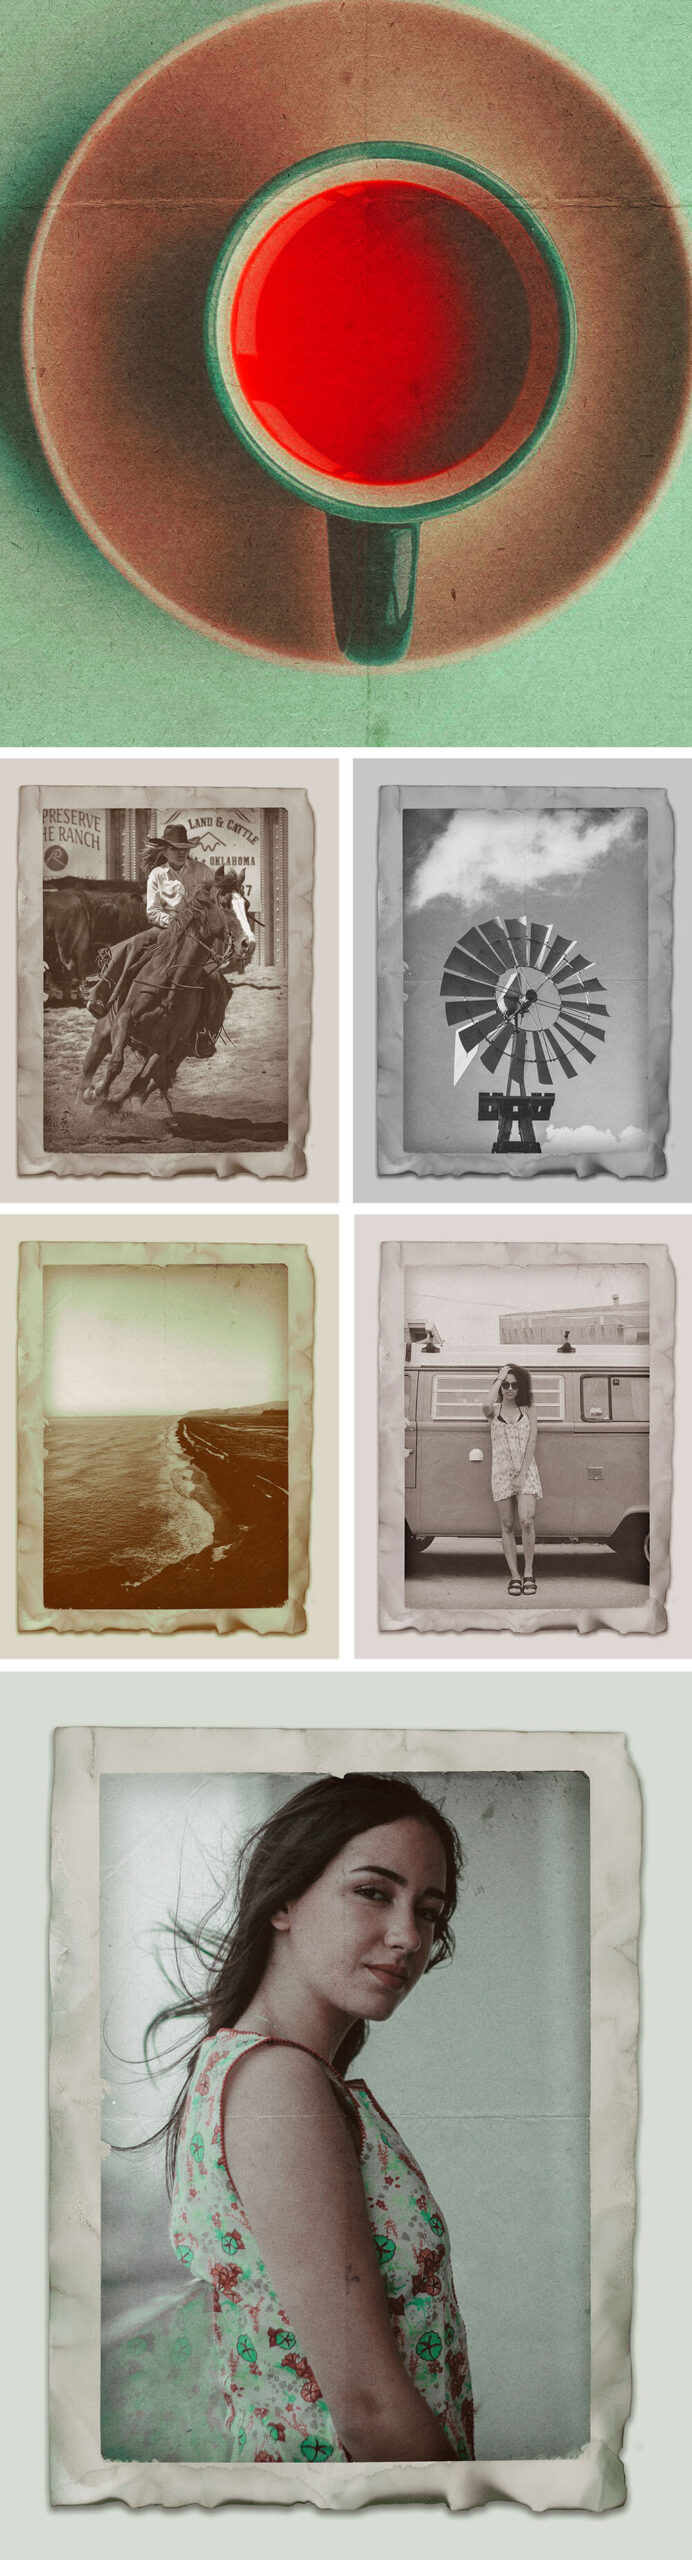 Free Authentic Vintage Photo Effects Mockup PSD Template